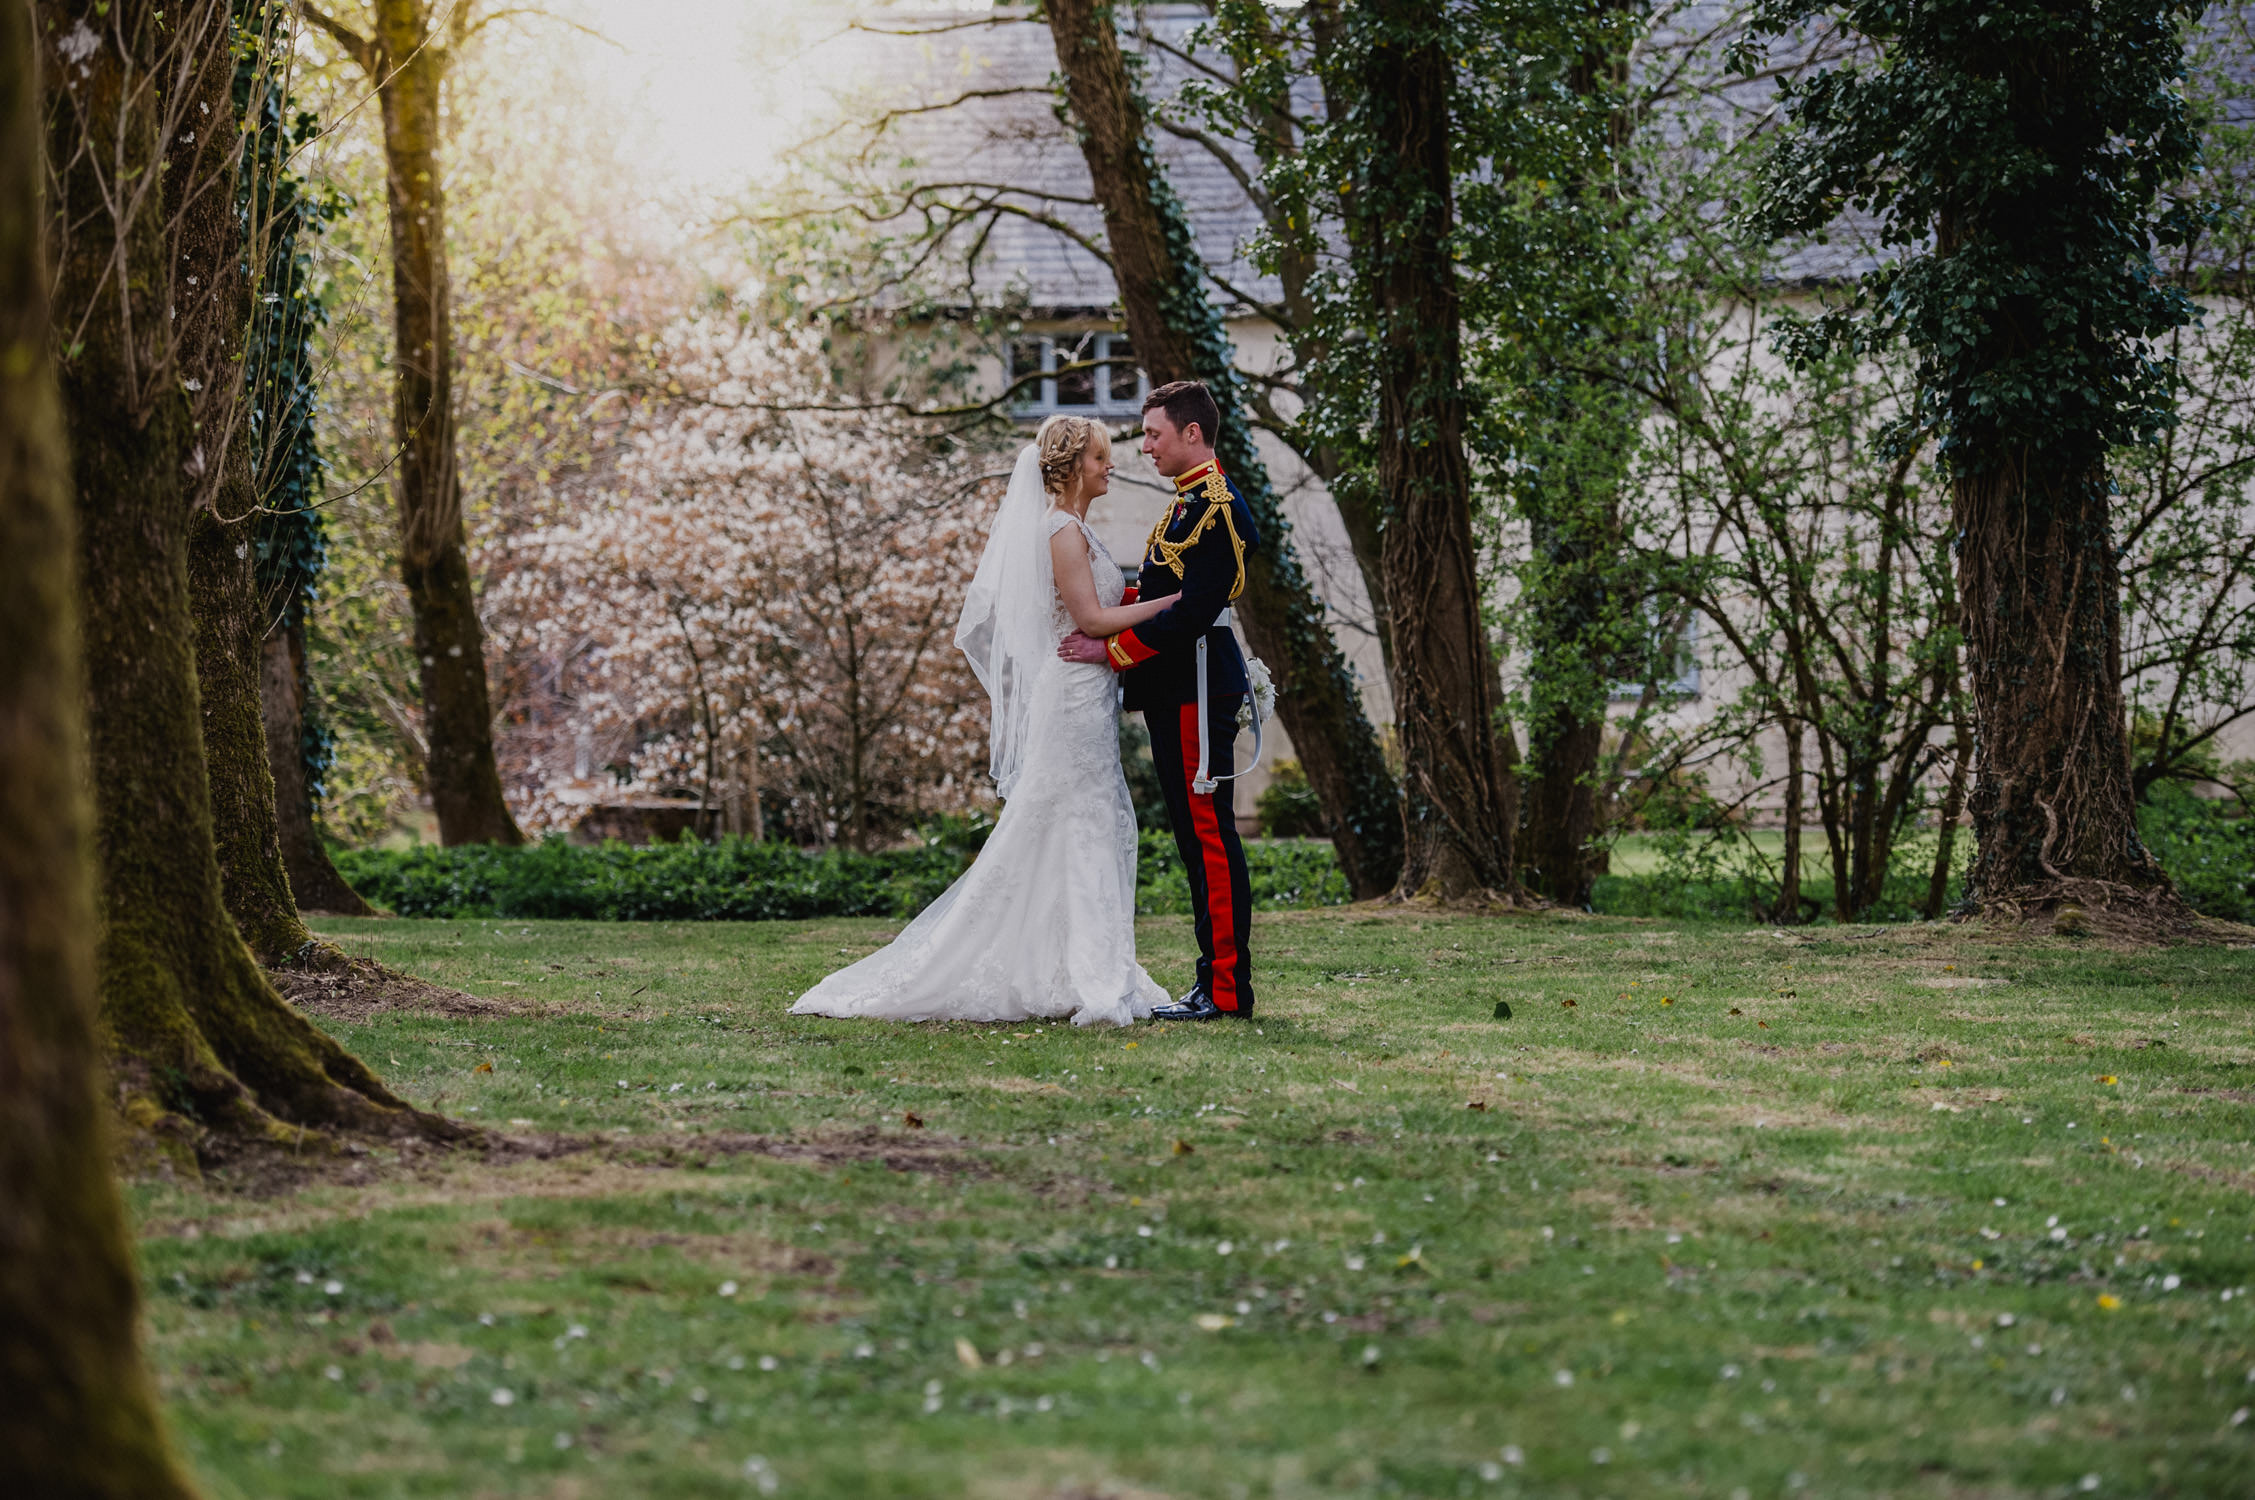 loyton lodge wedding, bride and groom, devon wedding photographer